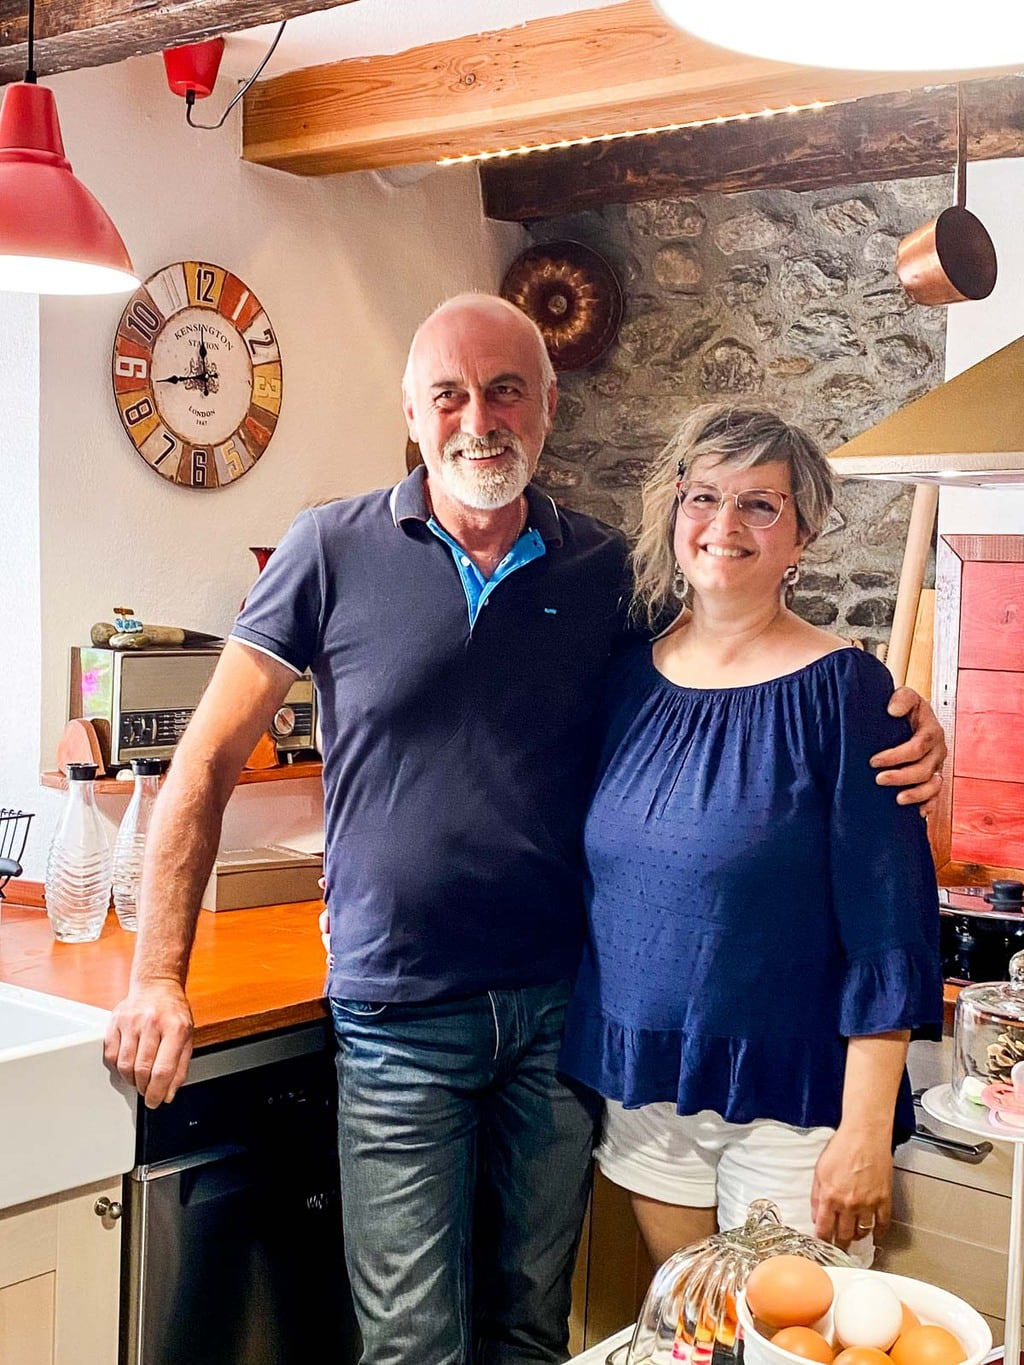 Vertical photo of Marcello and Franca in her Italian kitchen.